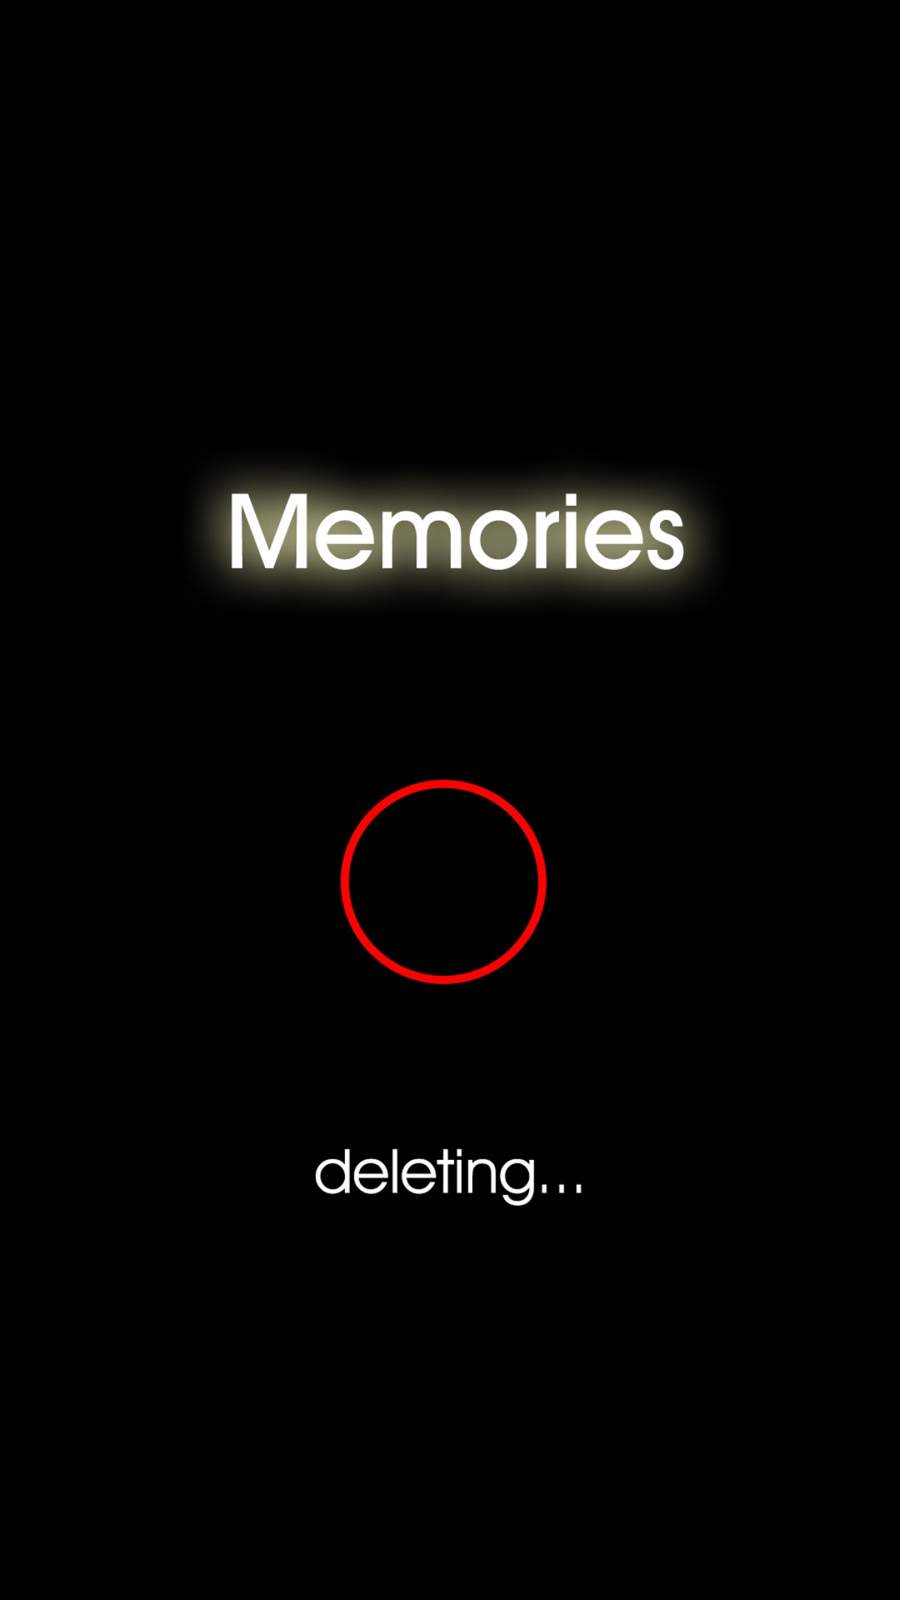 Deleting Memories iPhone Wallpaper